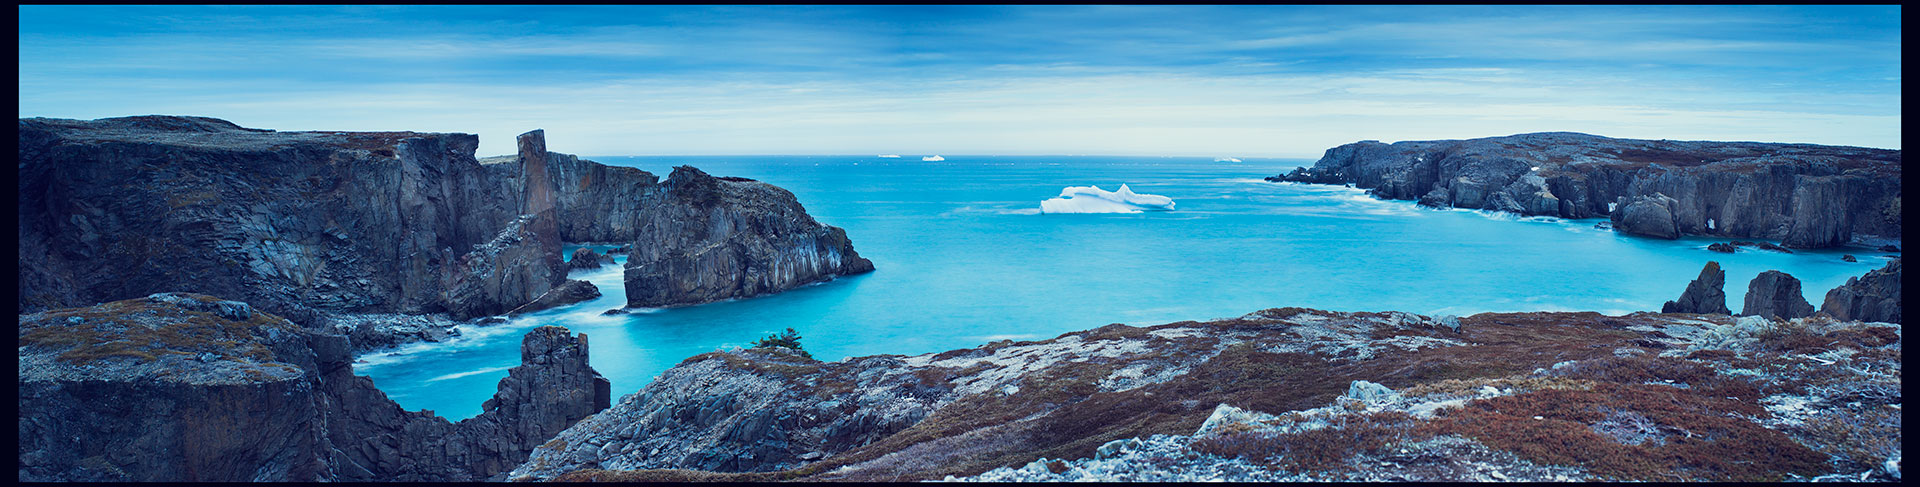 Cable_John_cove_pano-01b